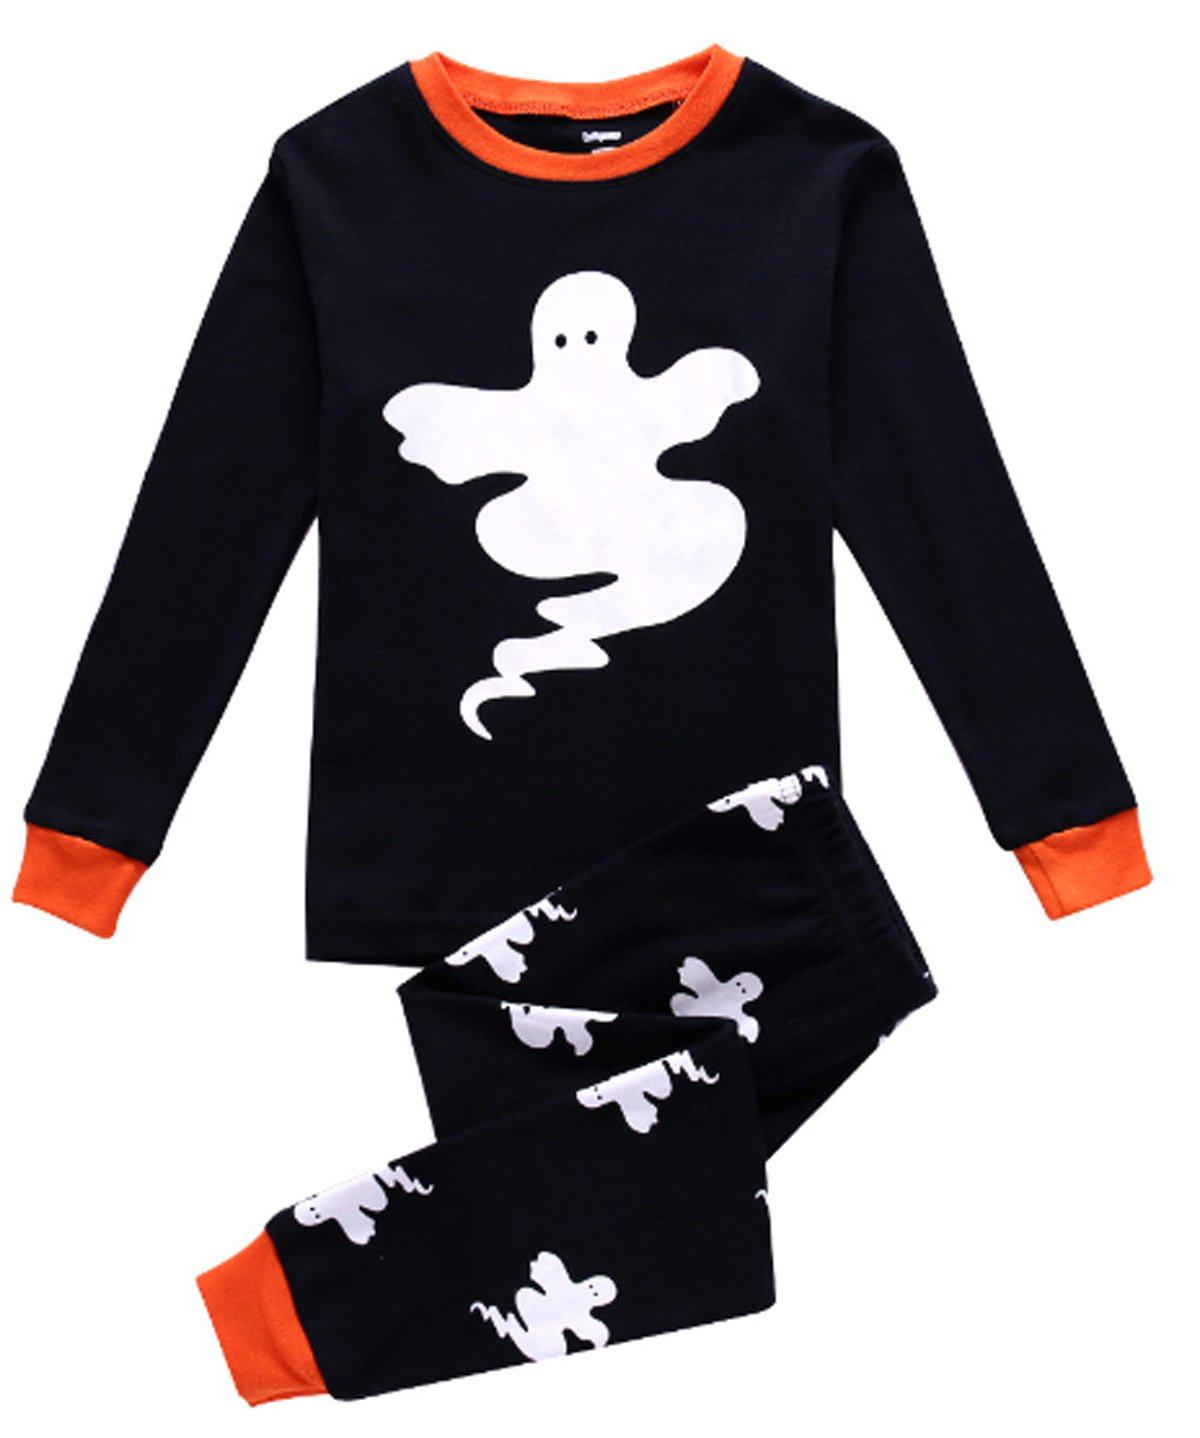 Little Boys Halloween Gost Pajamas Sets 100% Cotton Clothes Toddler Kid Nightgown